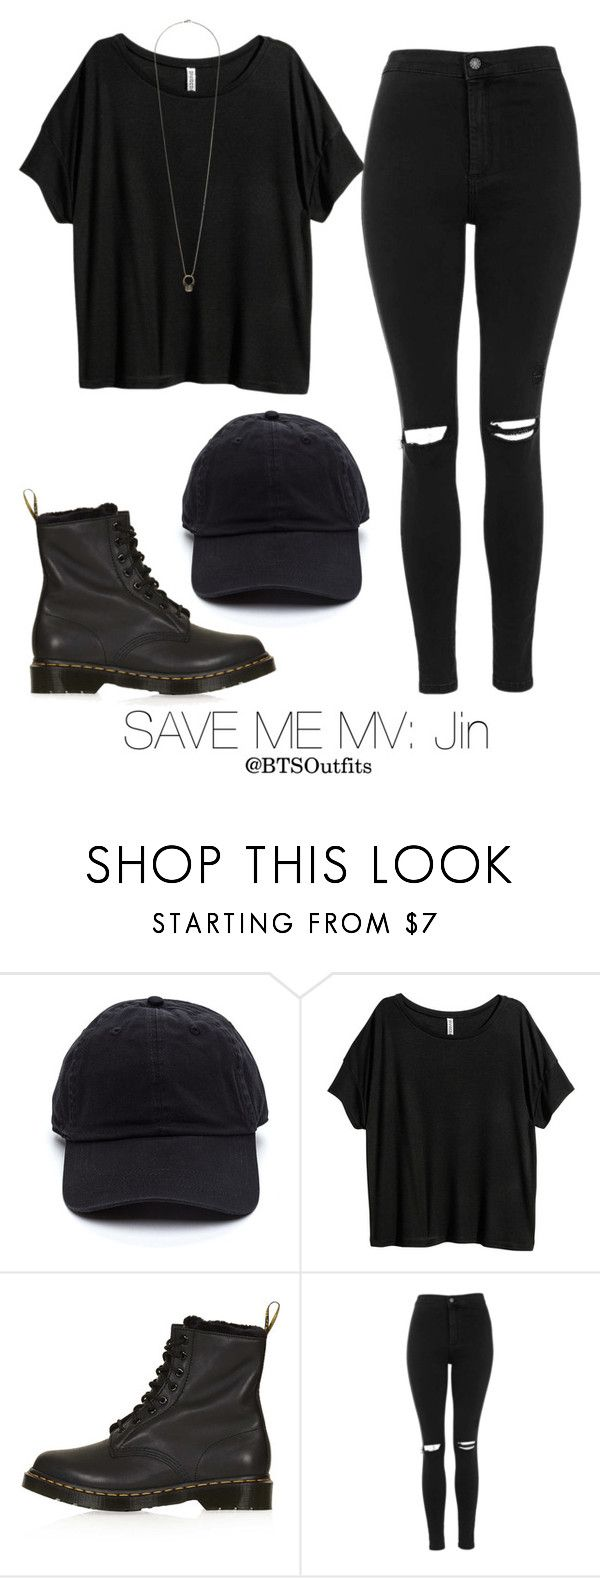 """Save Me MV: Jin"" by btsoutfits ❤ liked on Polyvore featuring H&M and Topshop"